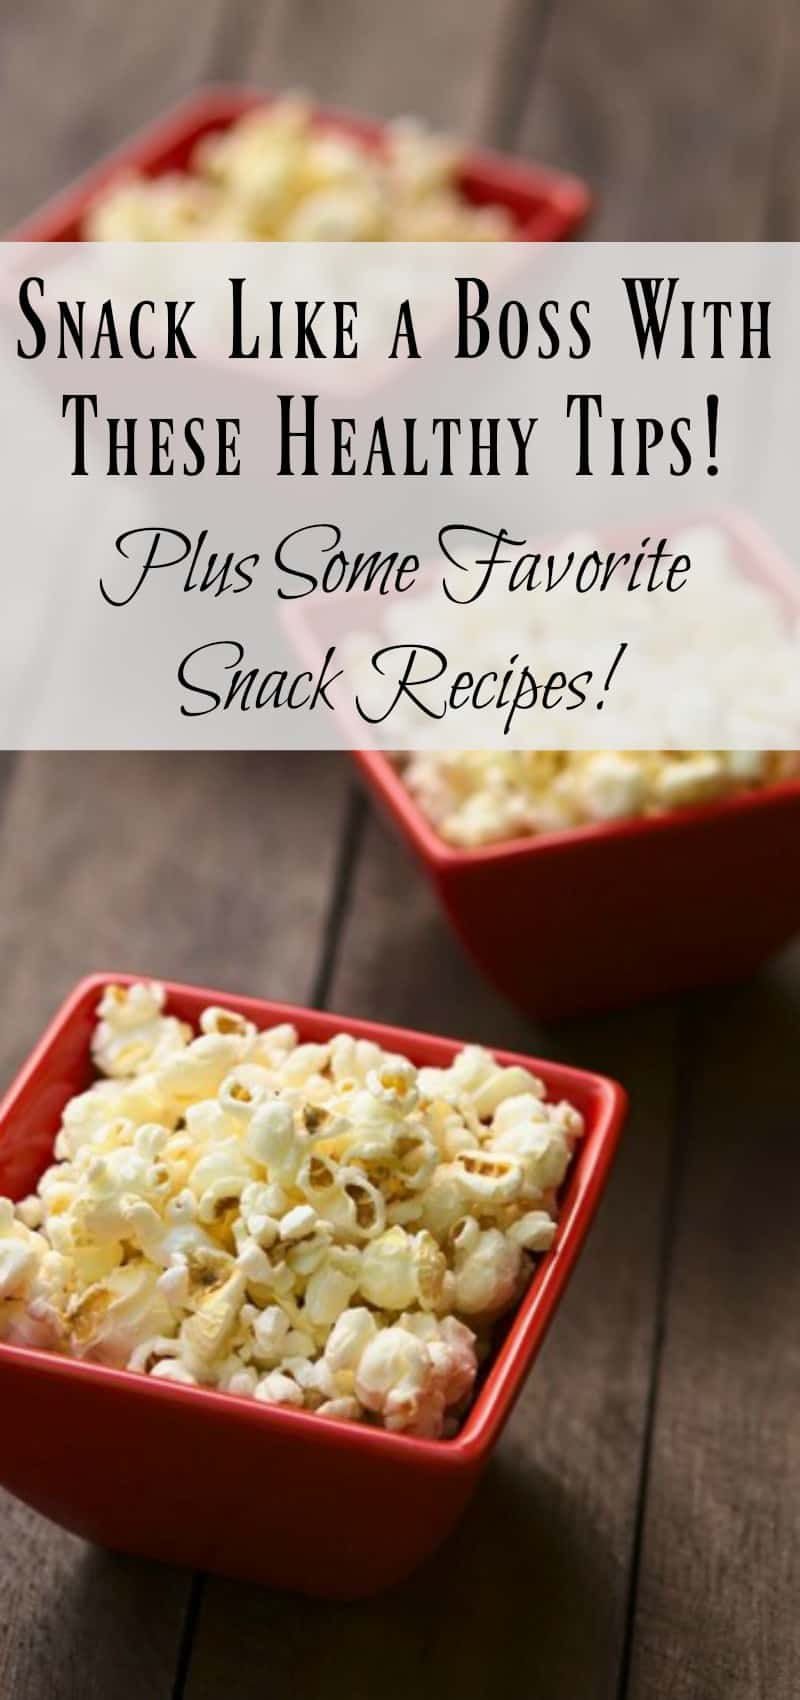 Snack Like a Boss With These Healthy Tips! Plus Some Favorite Snack Recipes